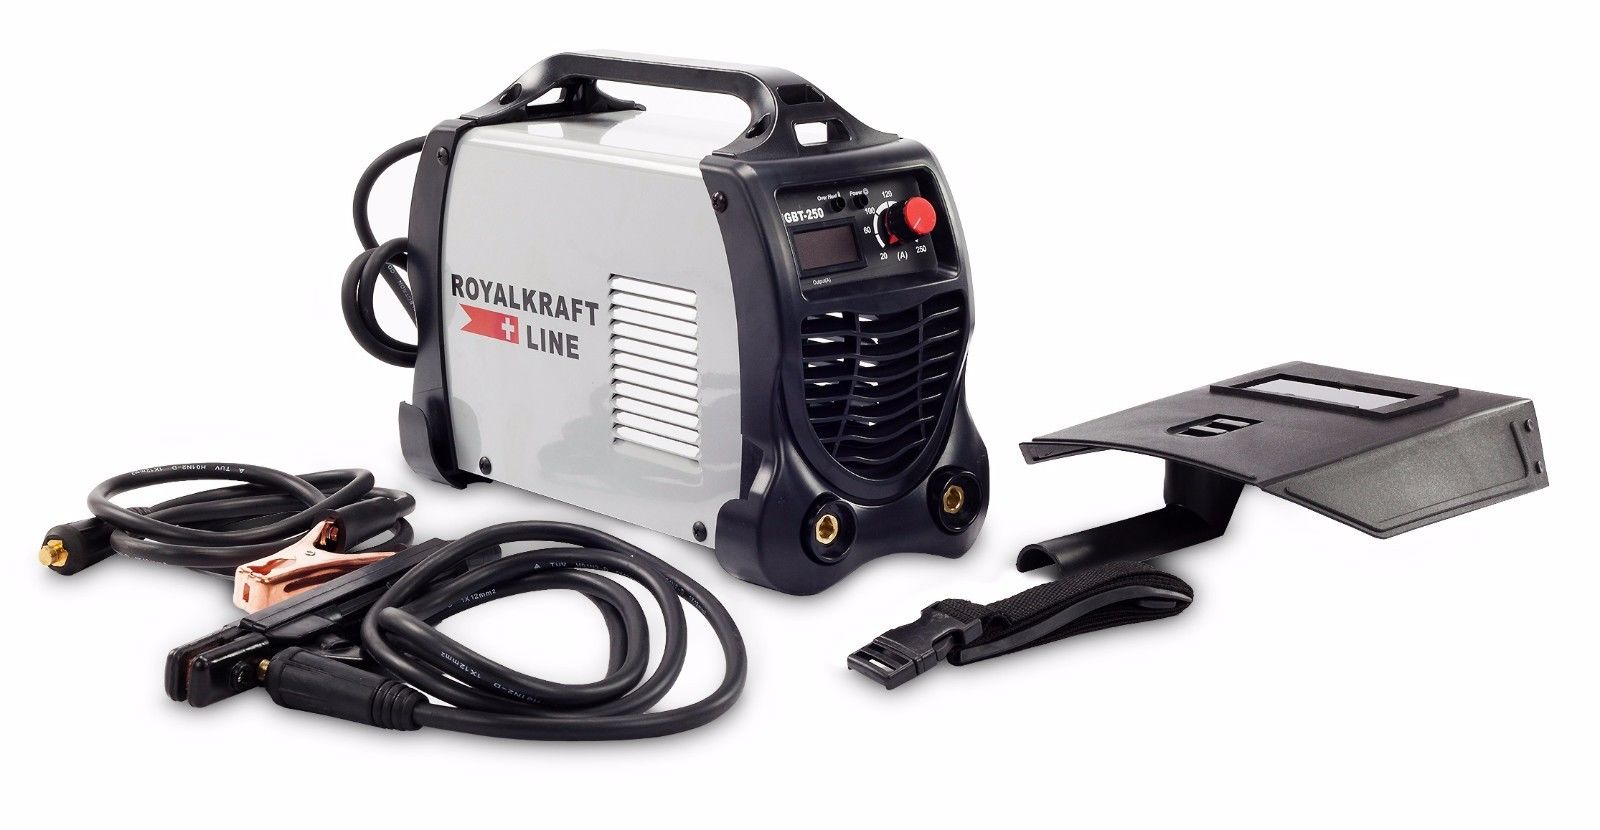 royalkraft line igbt 250dg mma inverter tig welding machine igbt 250dg wholesale deals